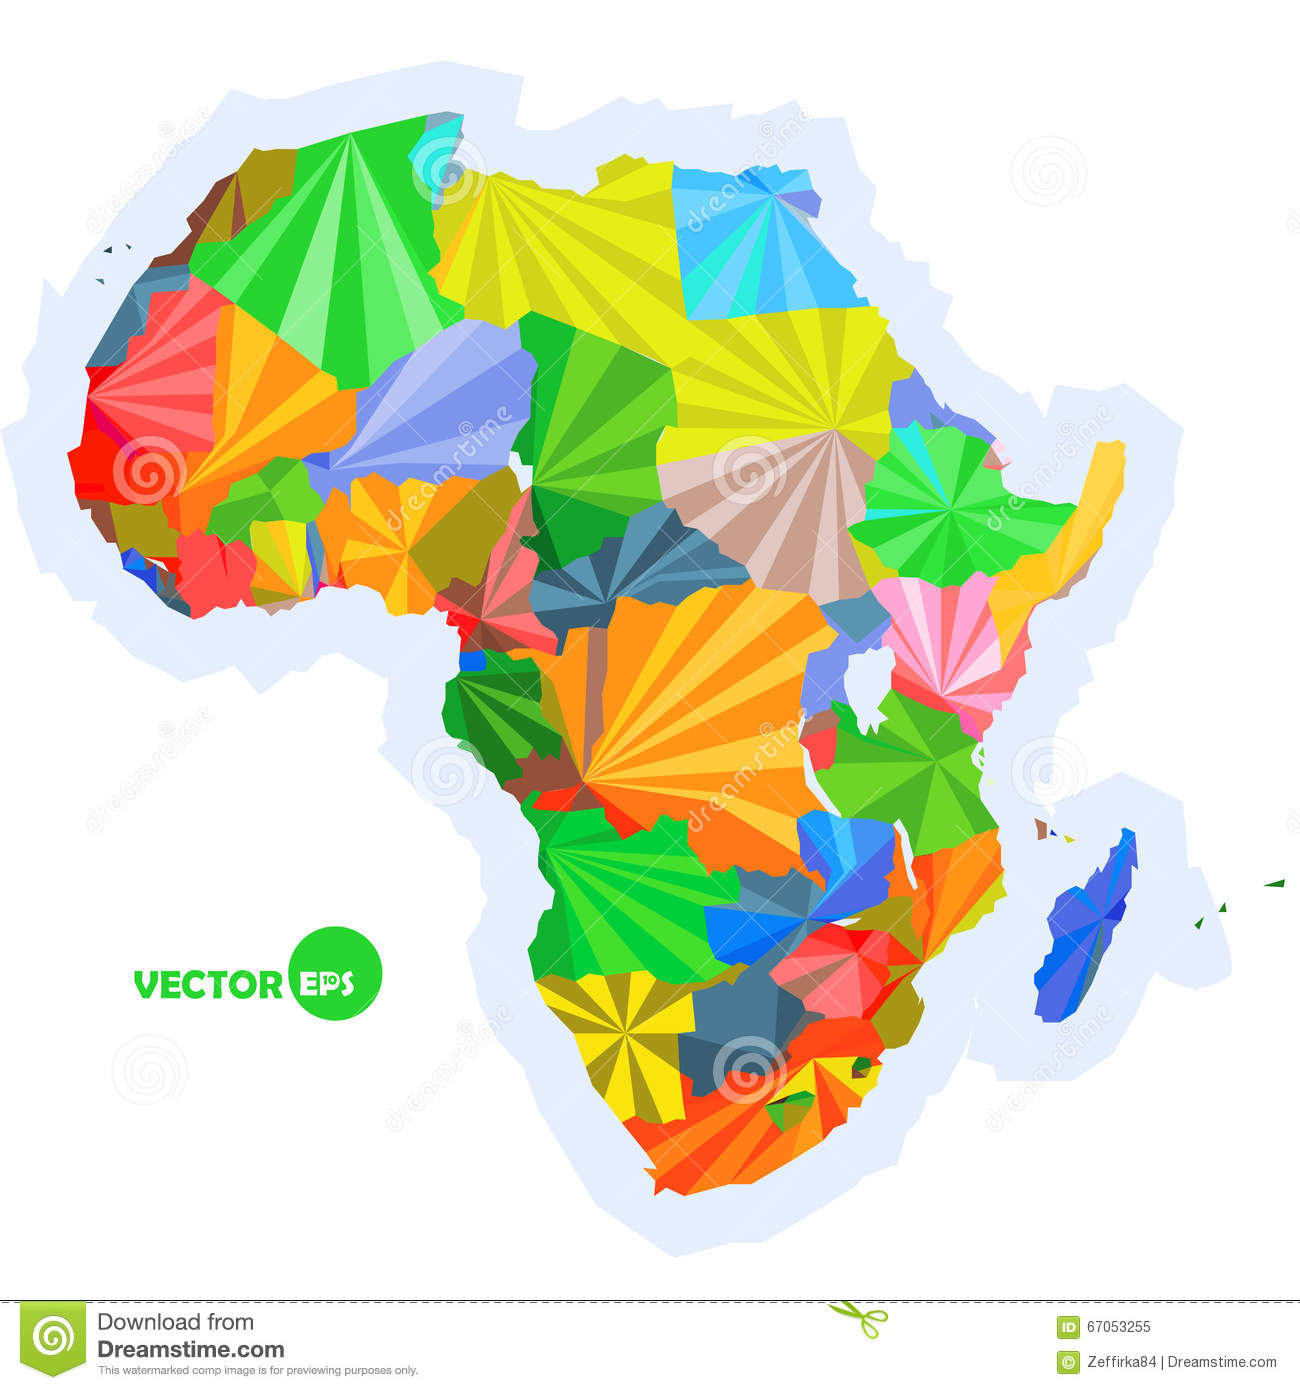 Map Of Africa Concept Map With Countries Colorful Africa Map - Africa map countries